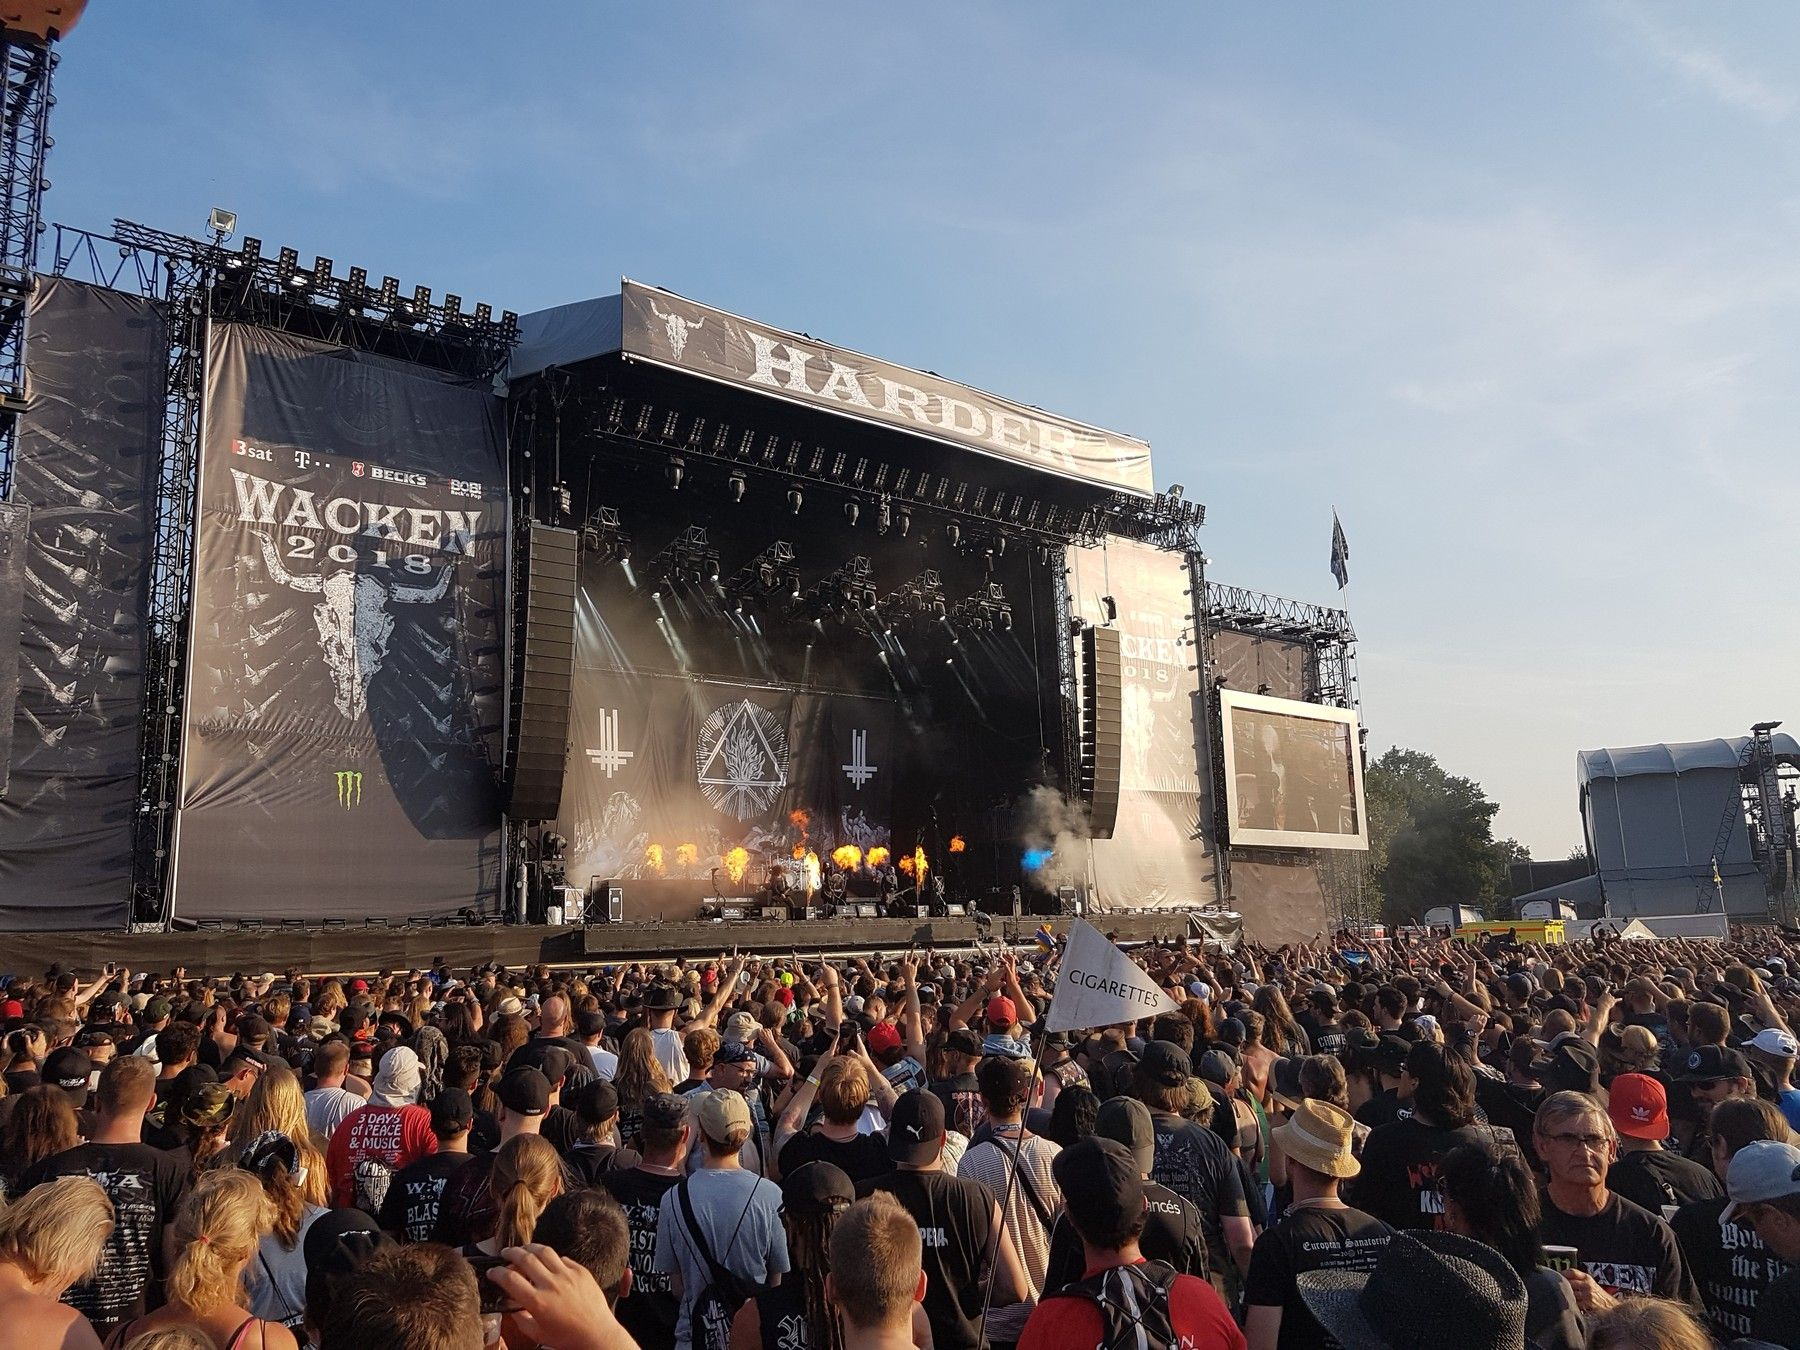 shakal-today-wacken-0010.jpg